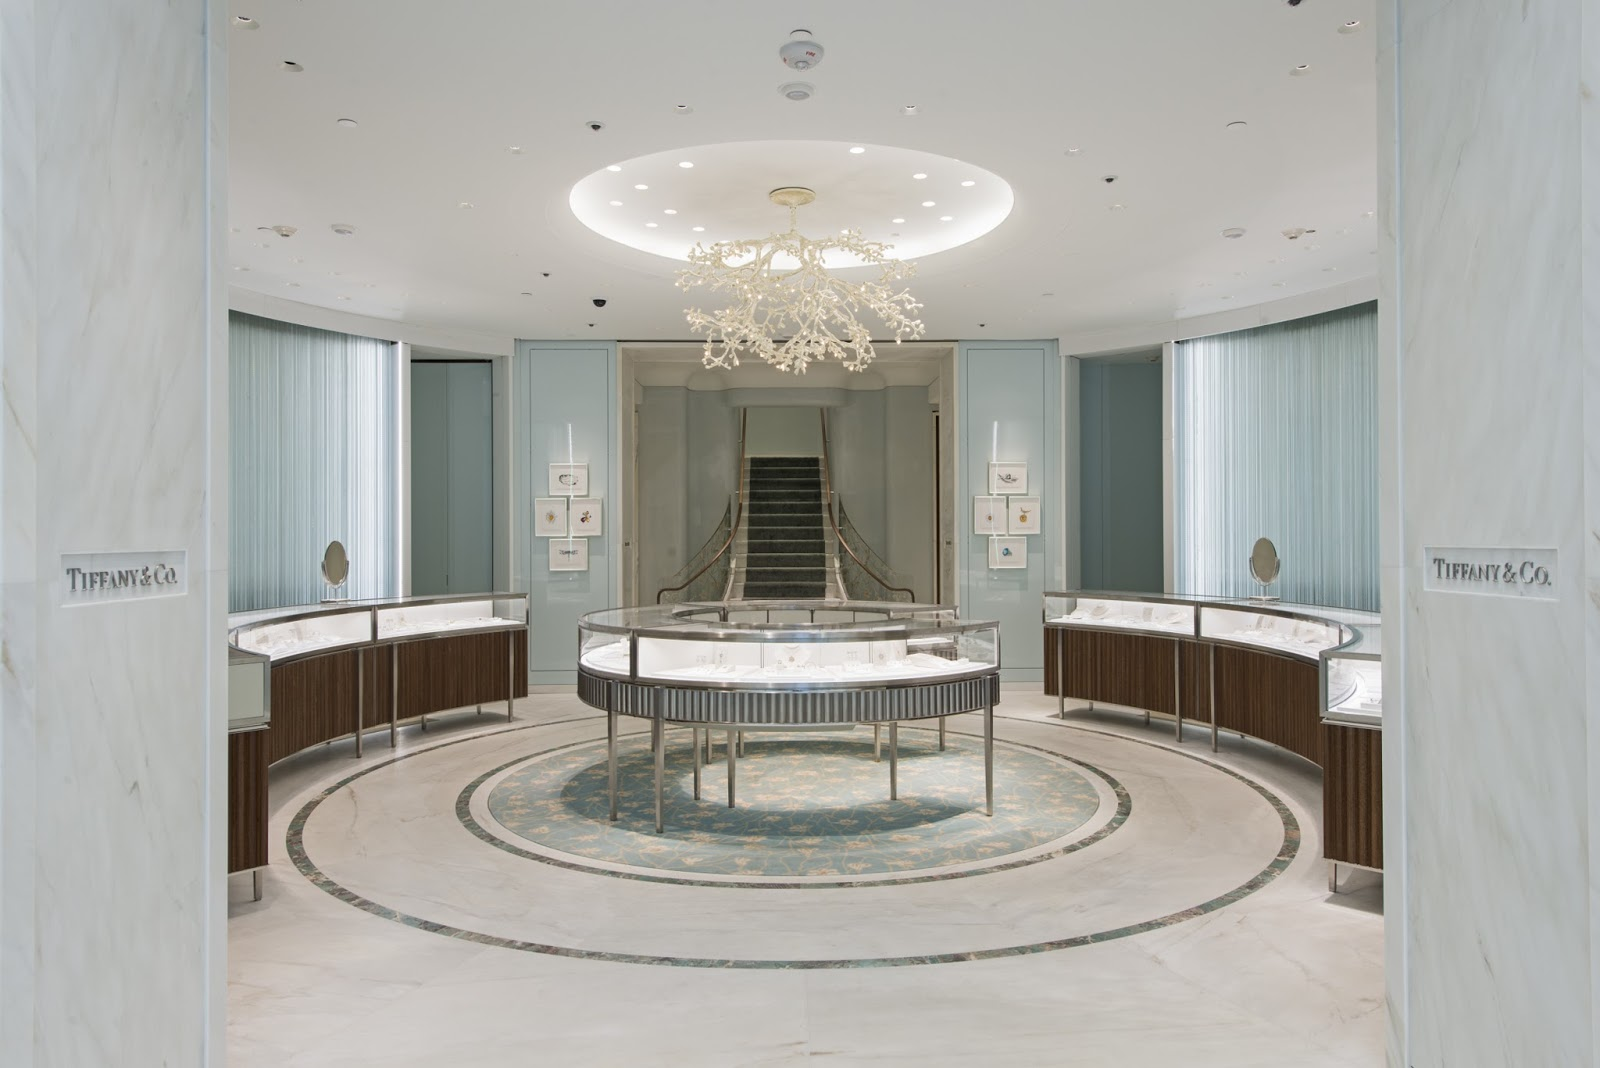 Tiffany's Opened Its Store in Madrid